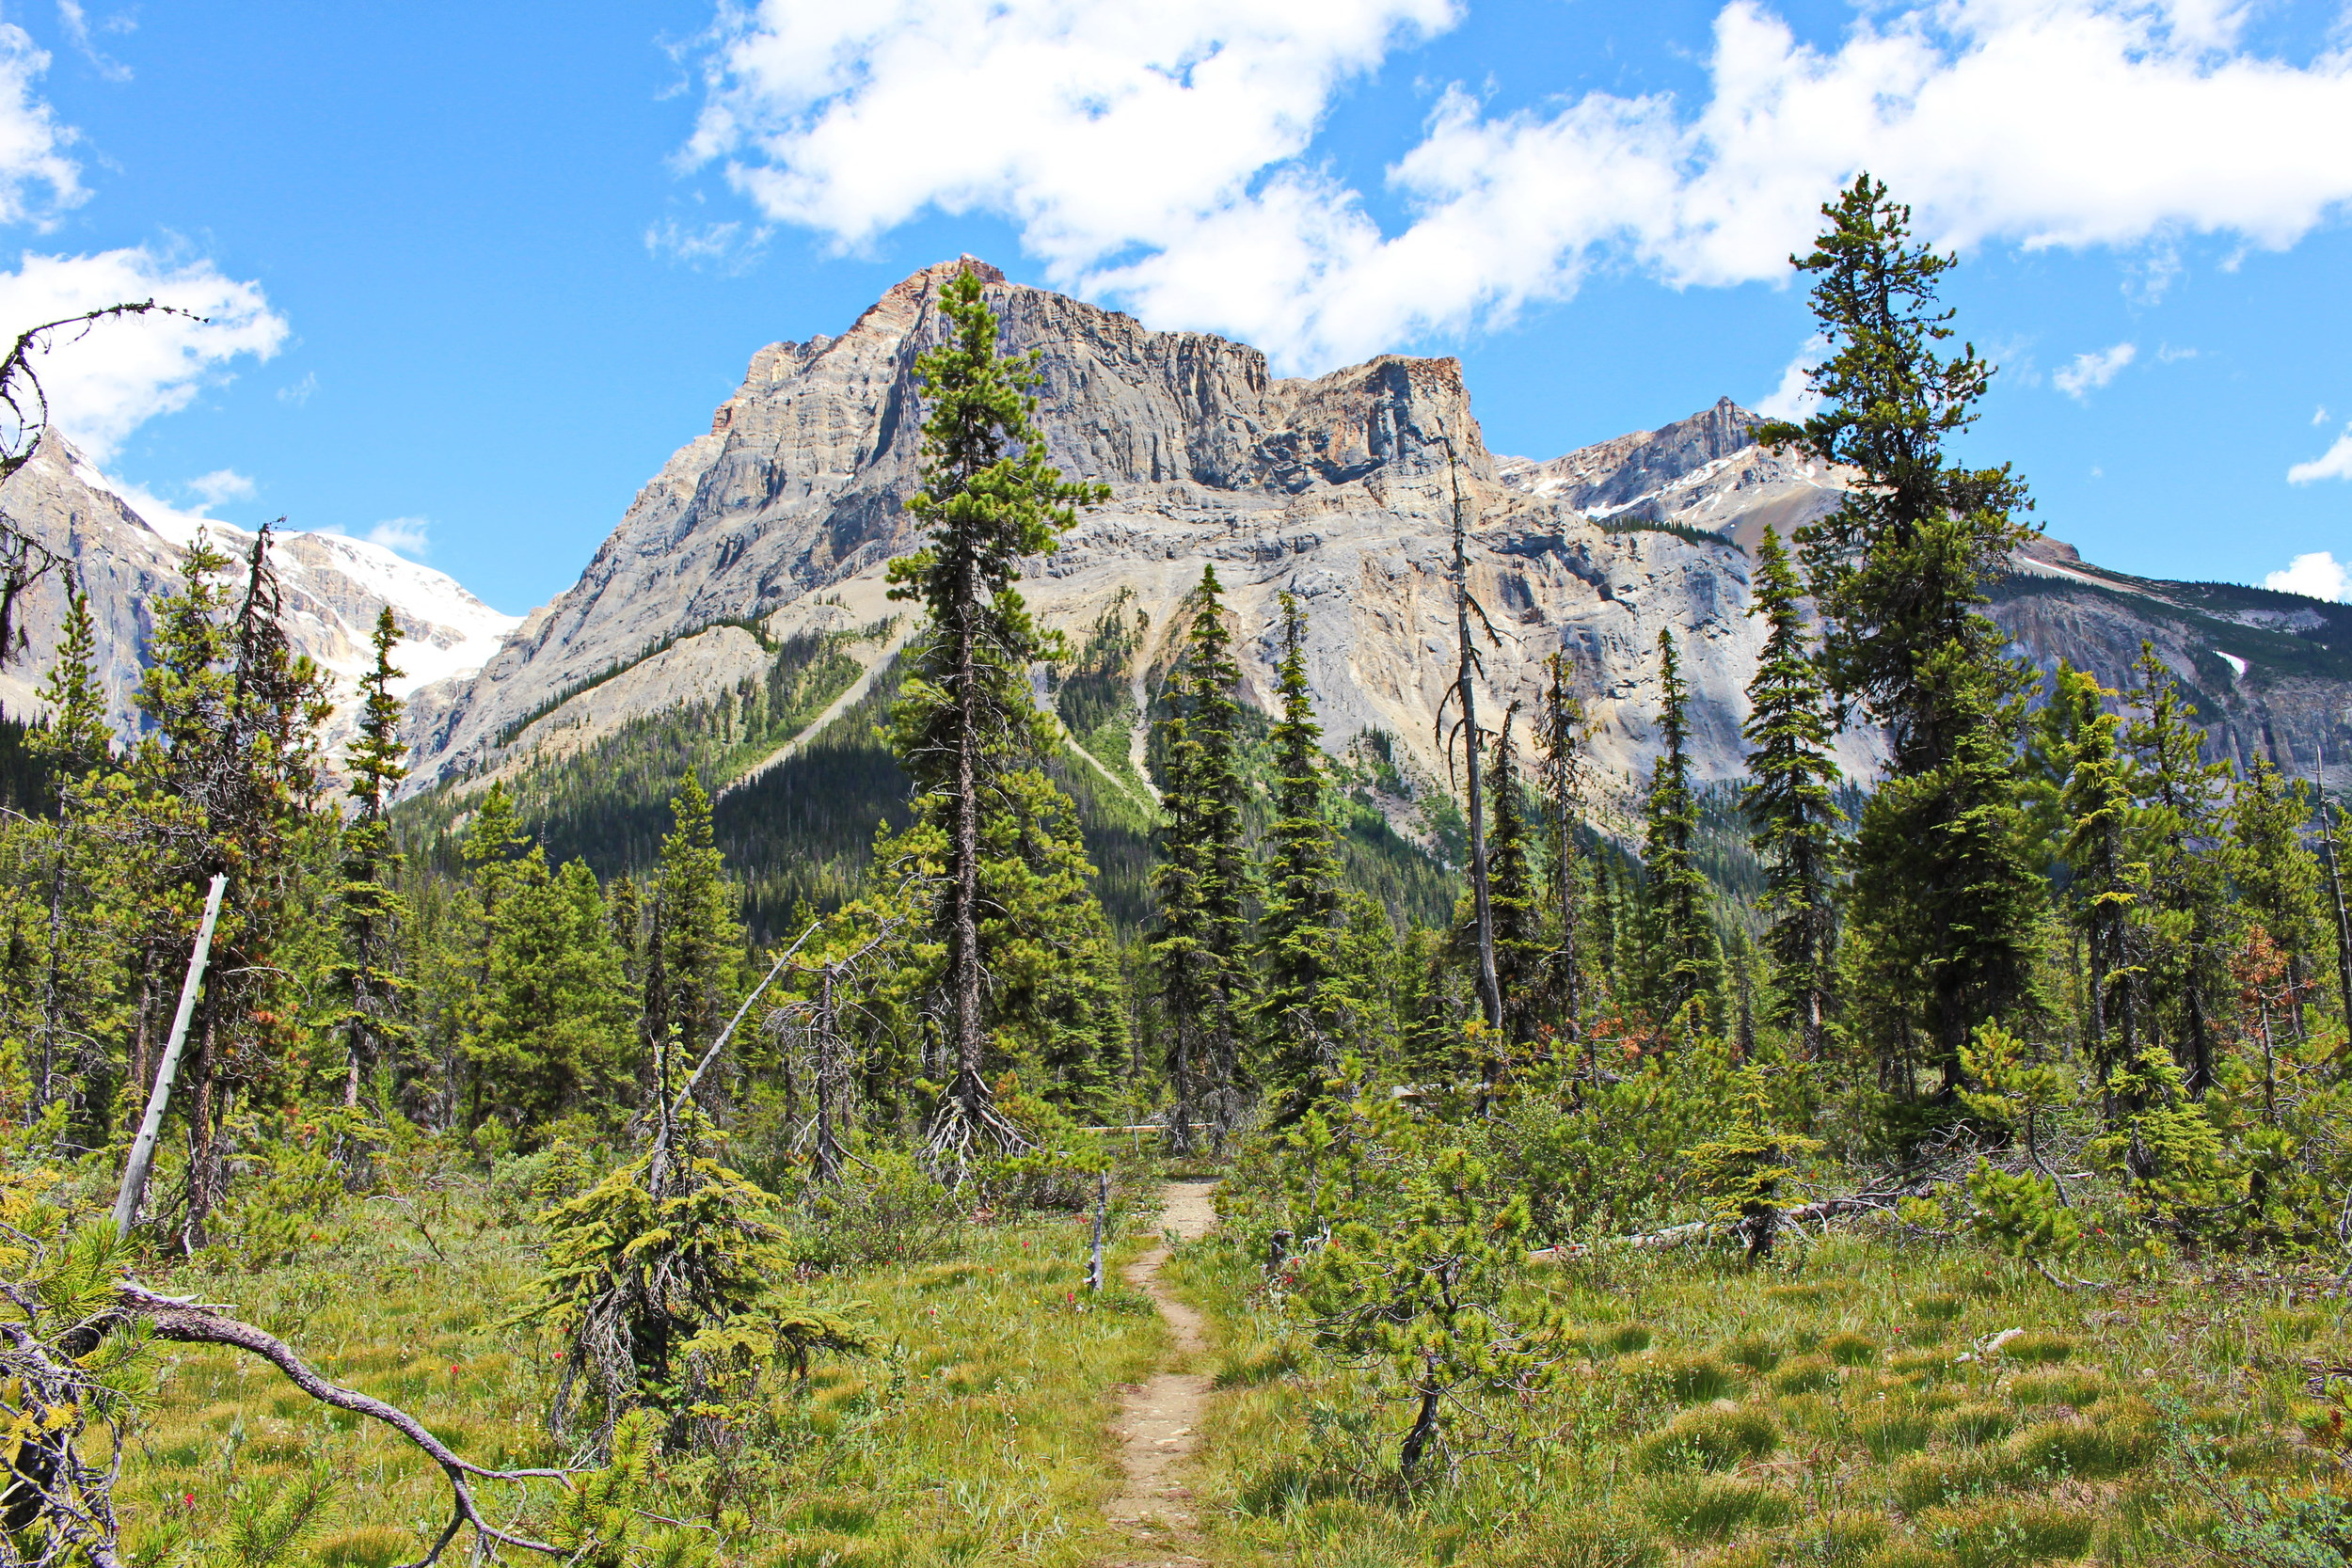 Treed Paths and Mountain tops. Love.